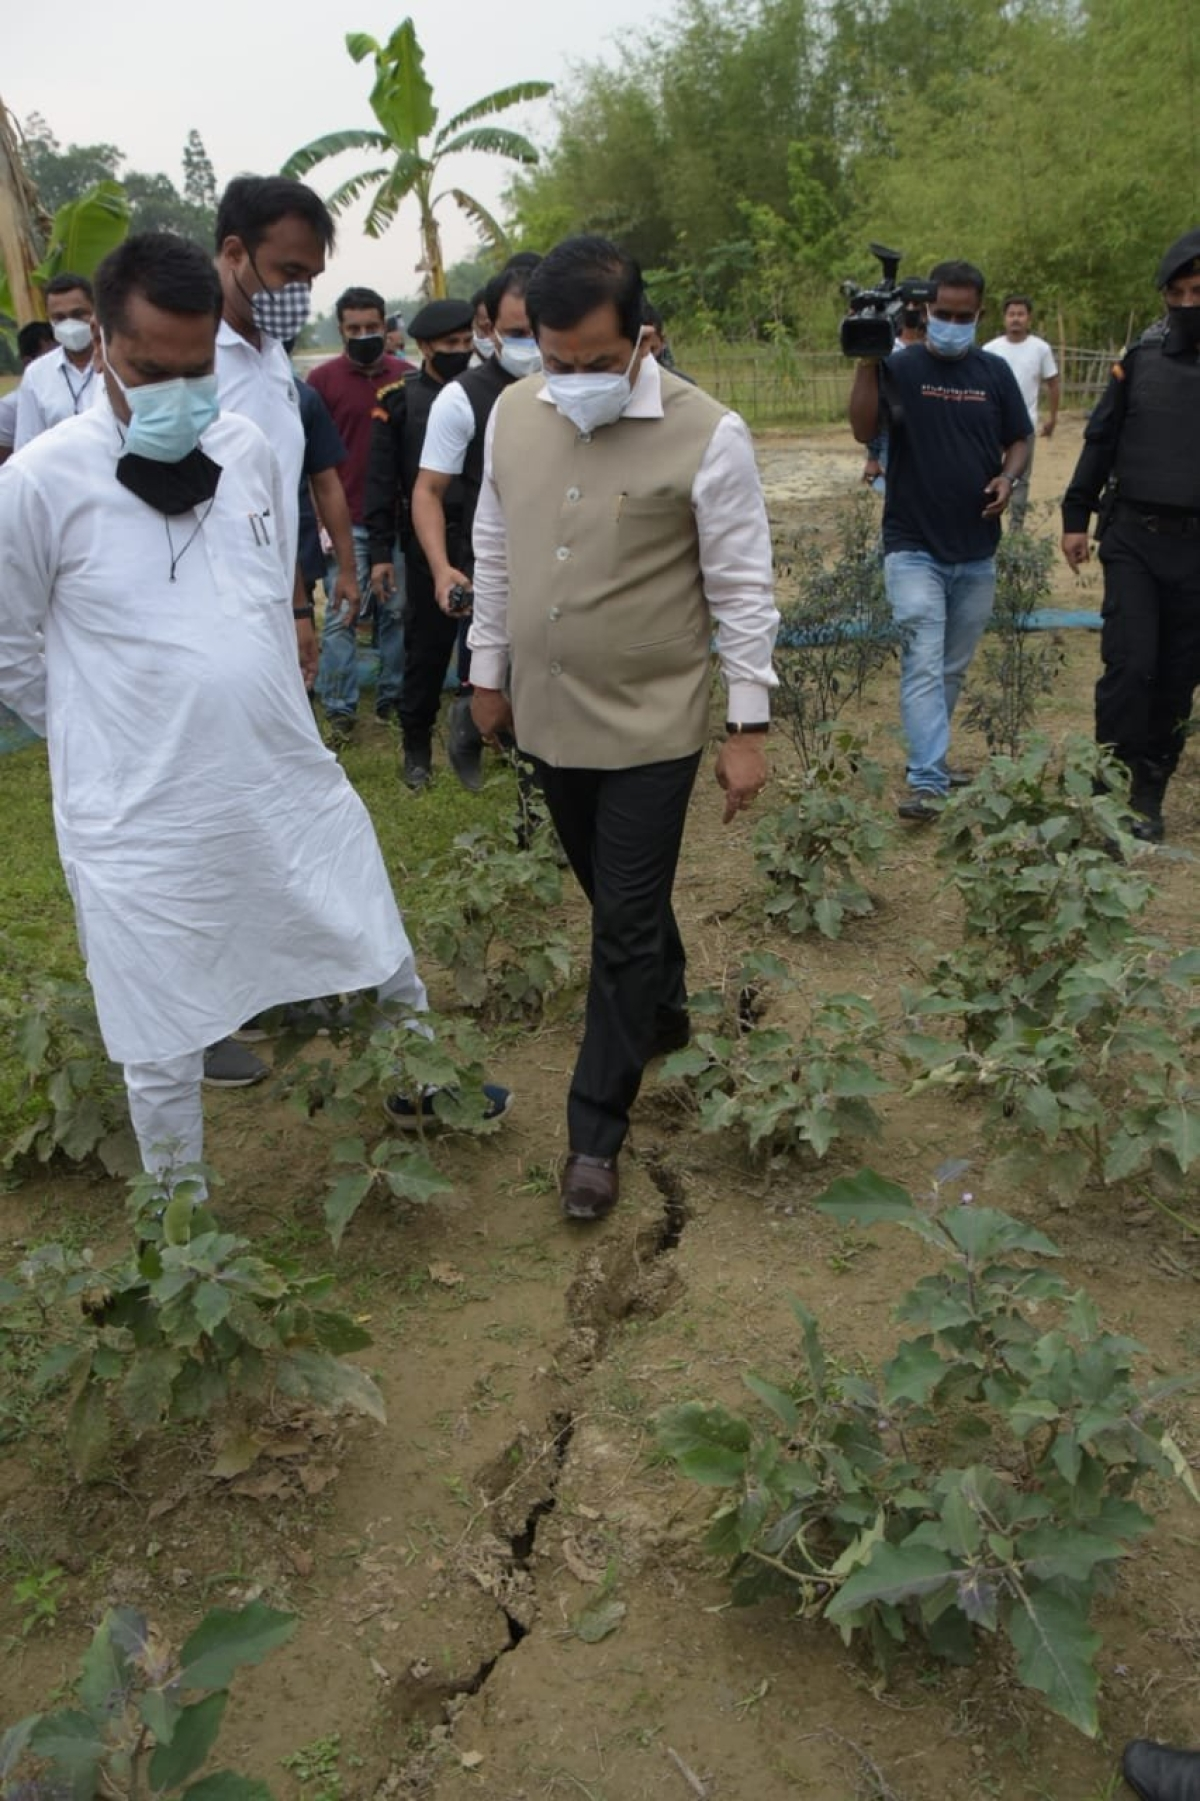 Assam CM Sarbananda Sonowal visited Dhekiajuli and its adjacent areas near the epicenter of the earthquake that struck the state on Wednesday.